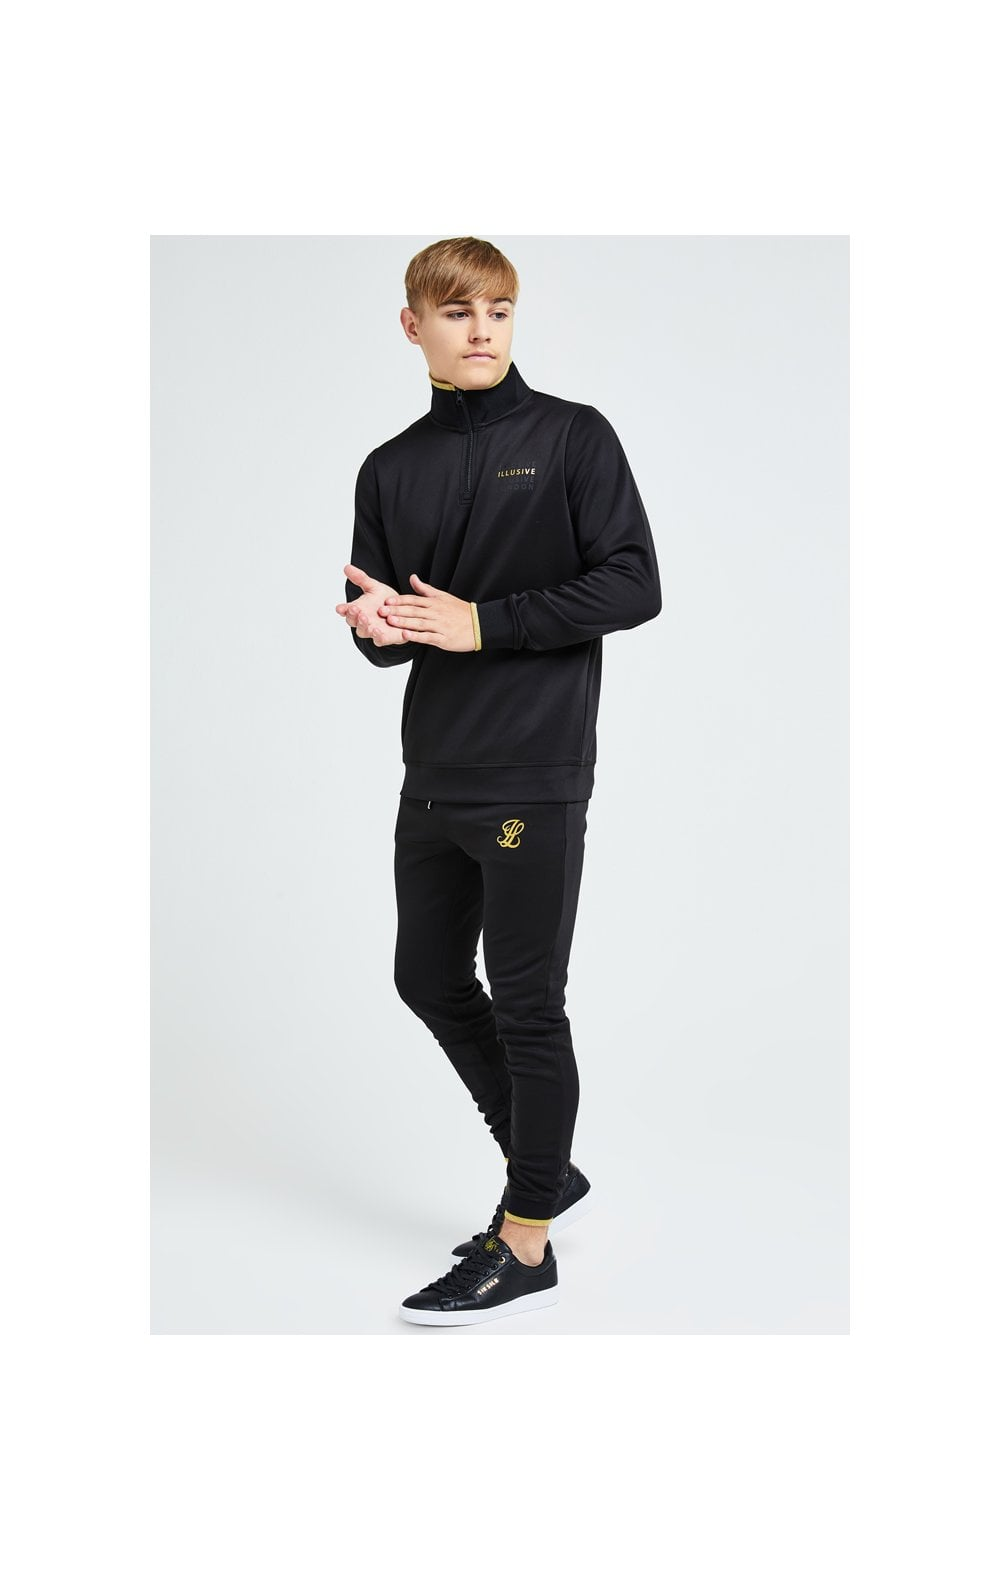 Load image into Gallery viewer, Illusive London Sovereign 1/4 Zip Hoodie  - Black & Gold (3)